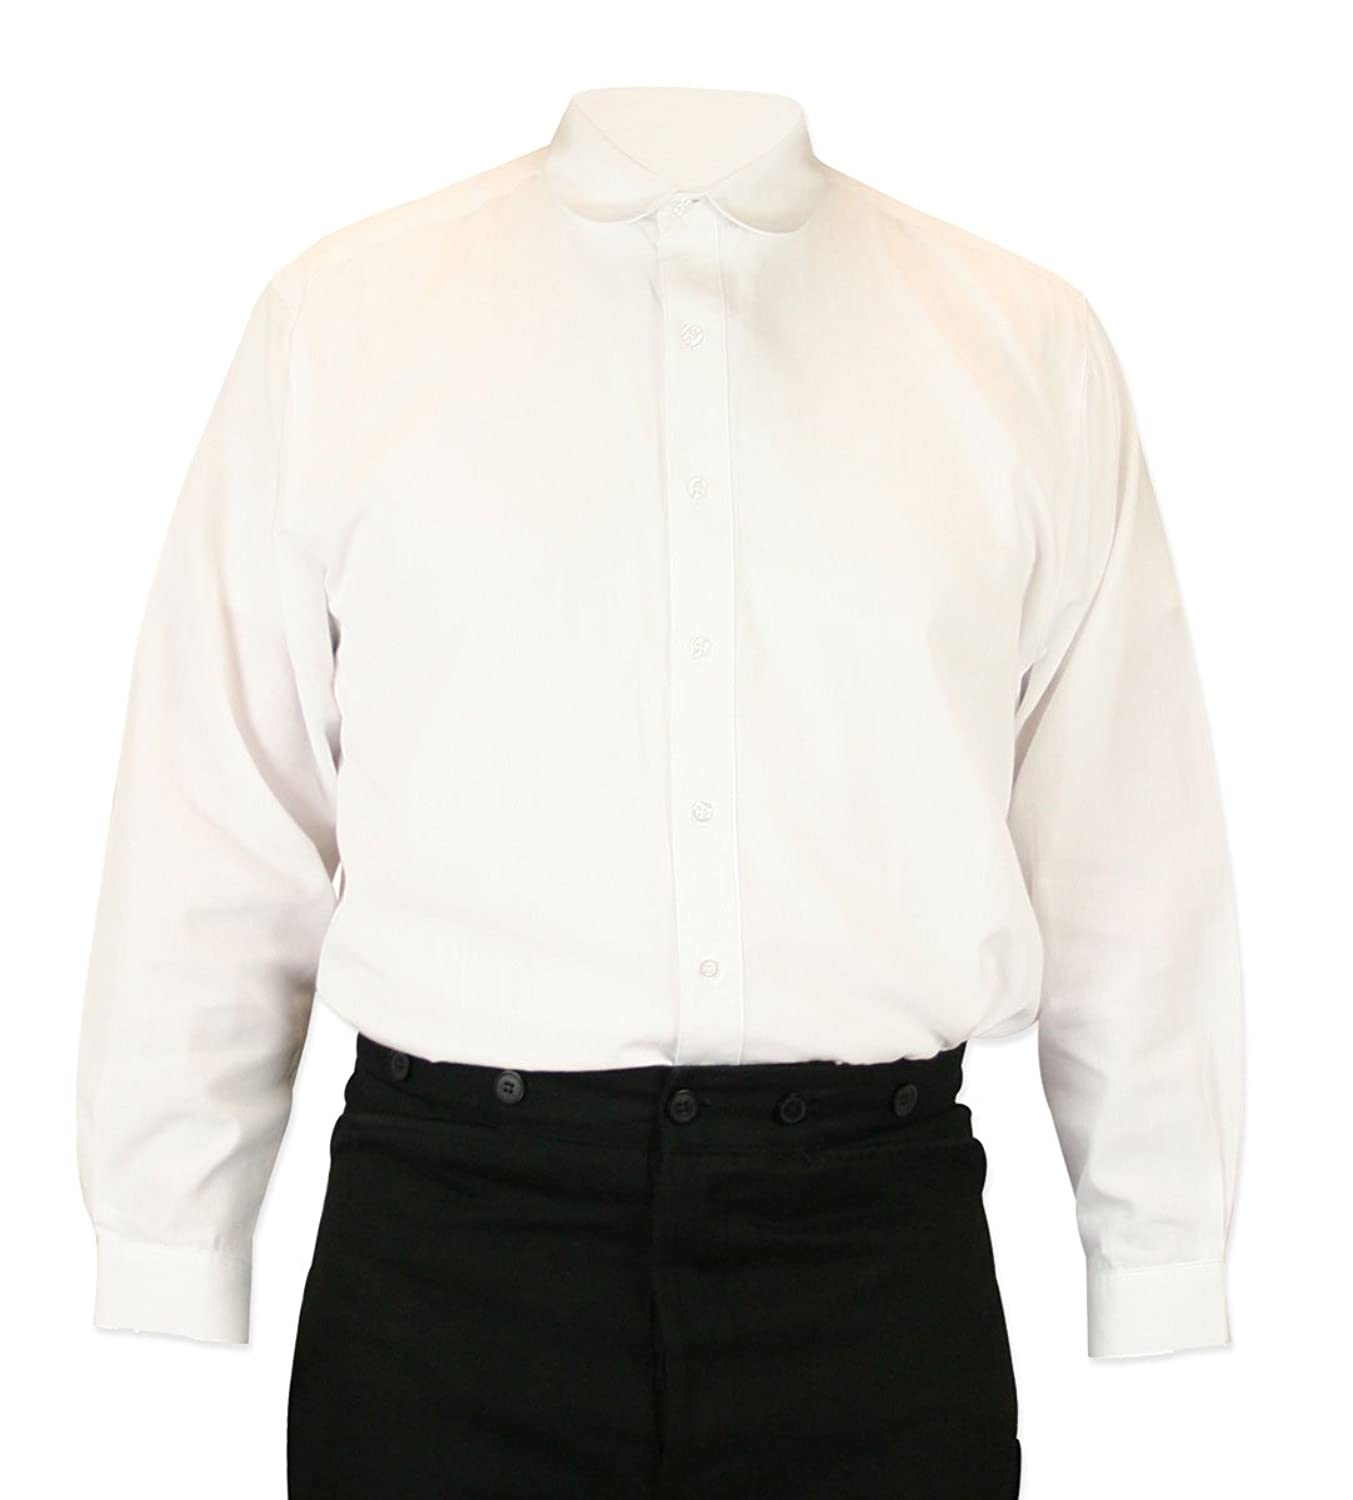 Great Gatsby White Suit- Get the Leonardo DiCaprio Look Virgil Club Collar Dress Shirt $59.95 AT vintagedancer.com